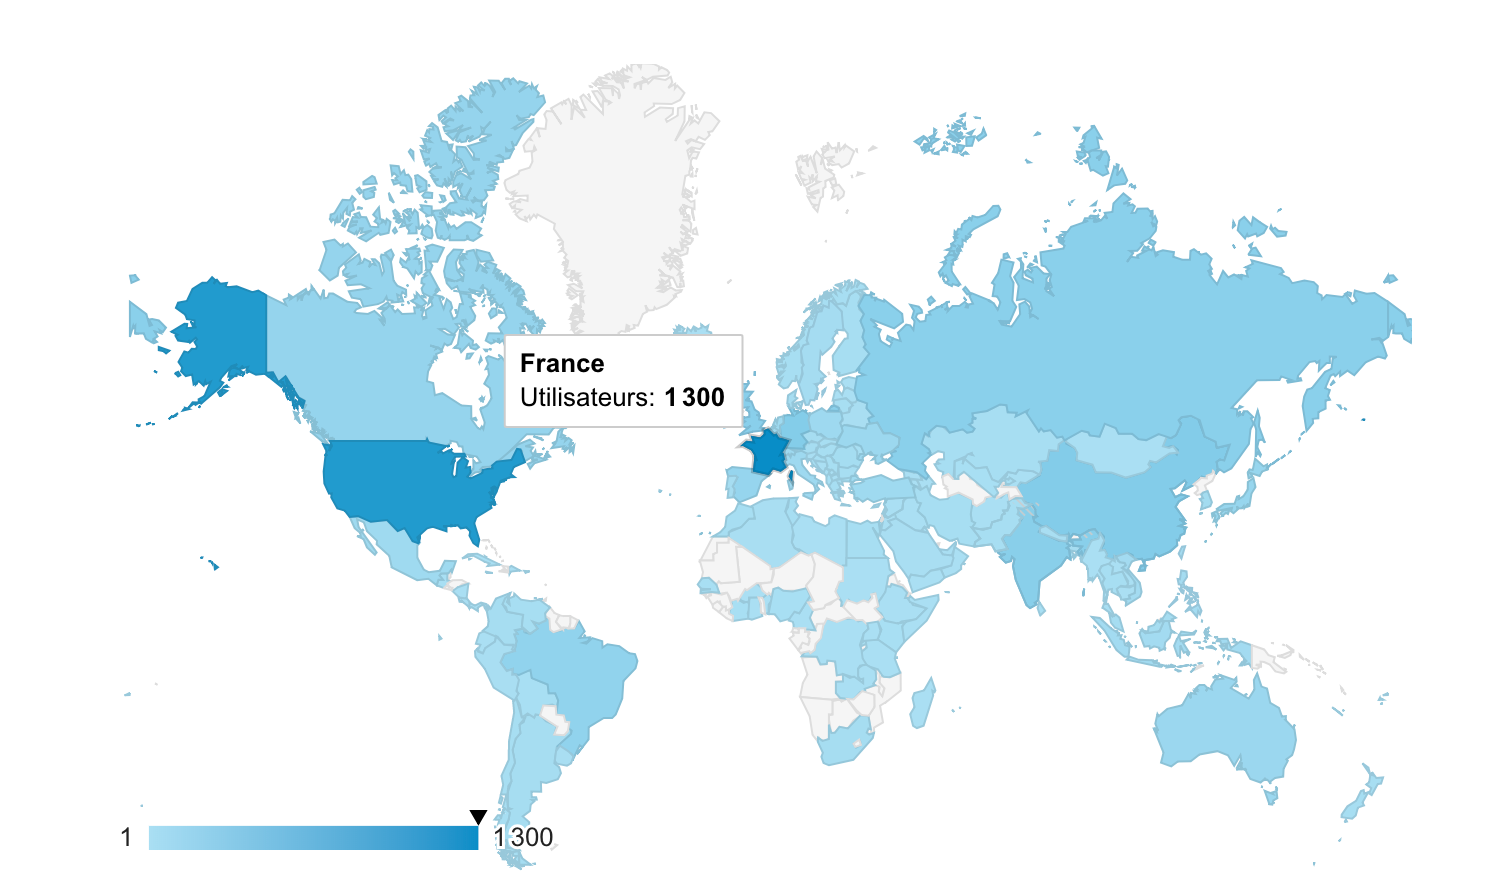 Map of the users of Code Notes in the world